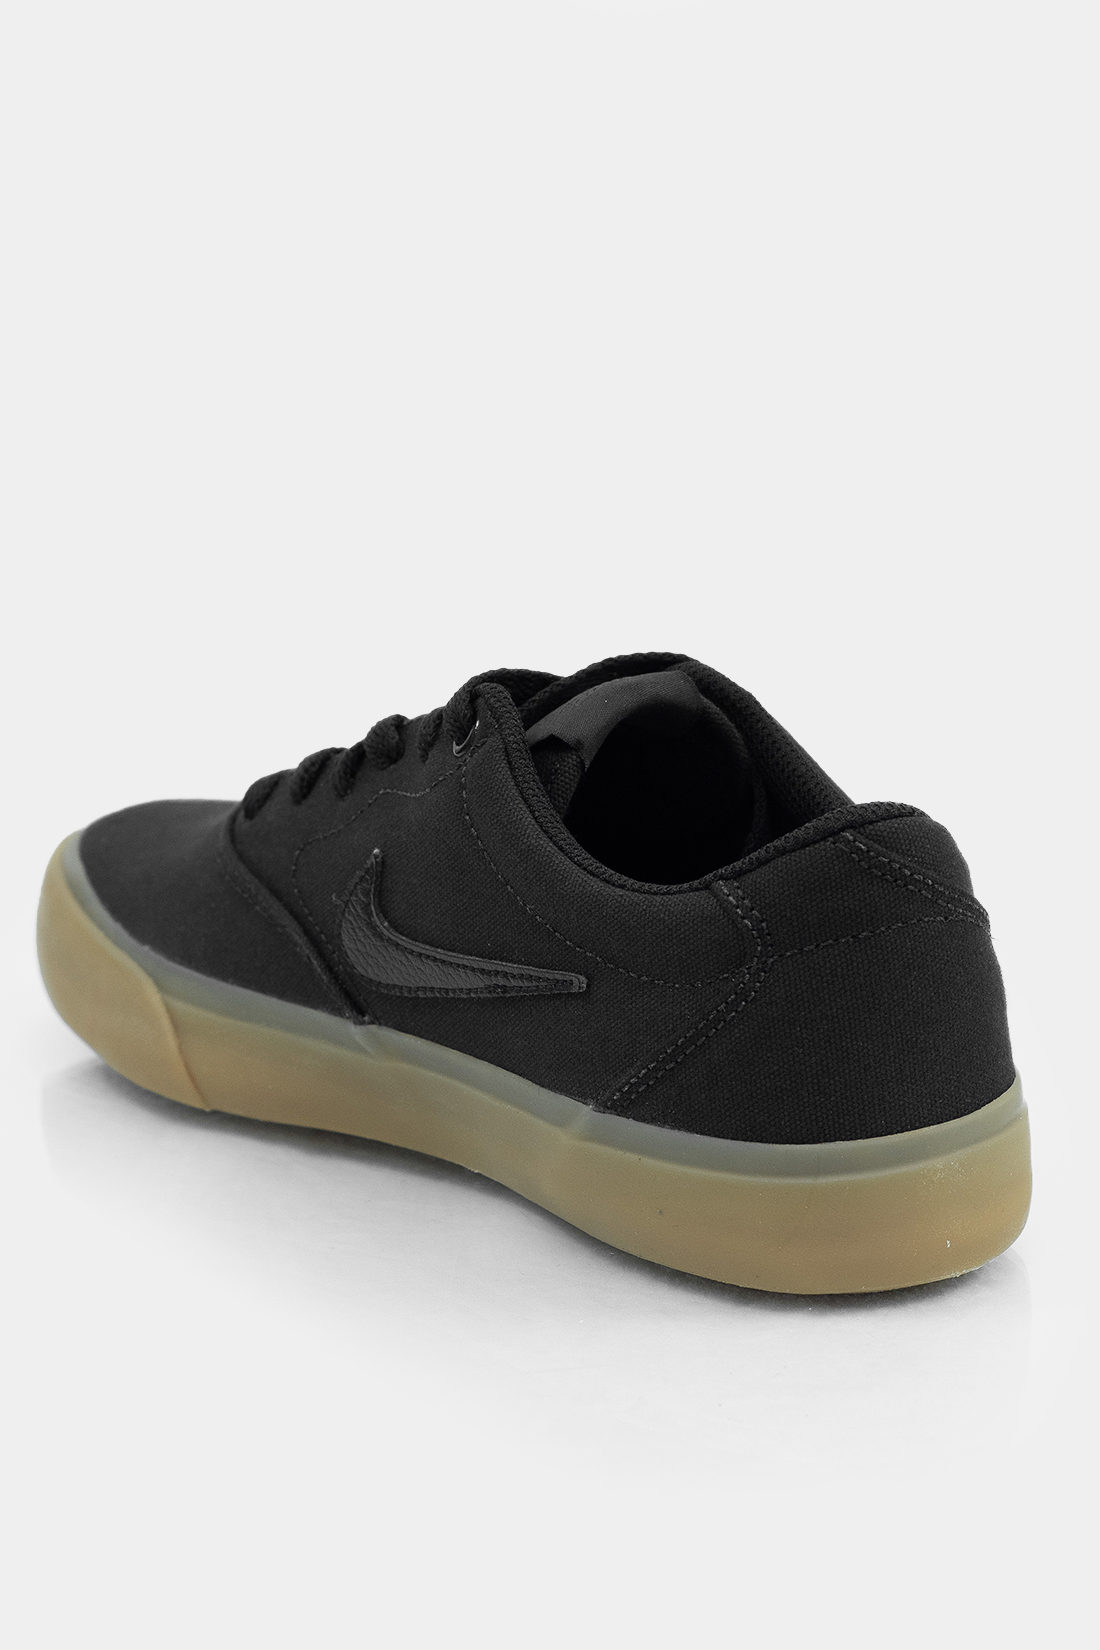 Tenis Casual Nike Sb Charge Cnvs